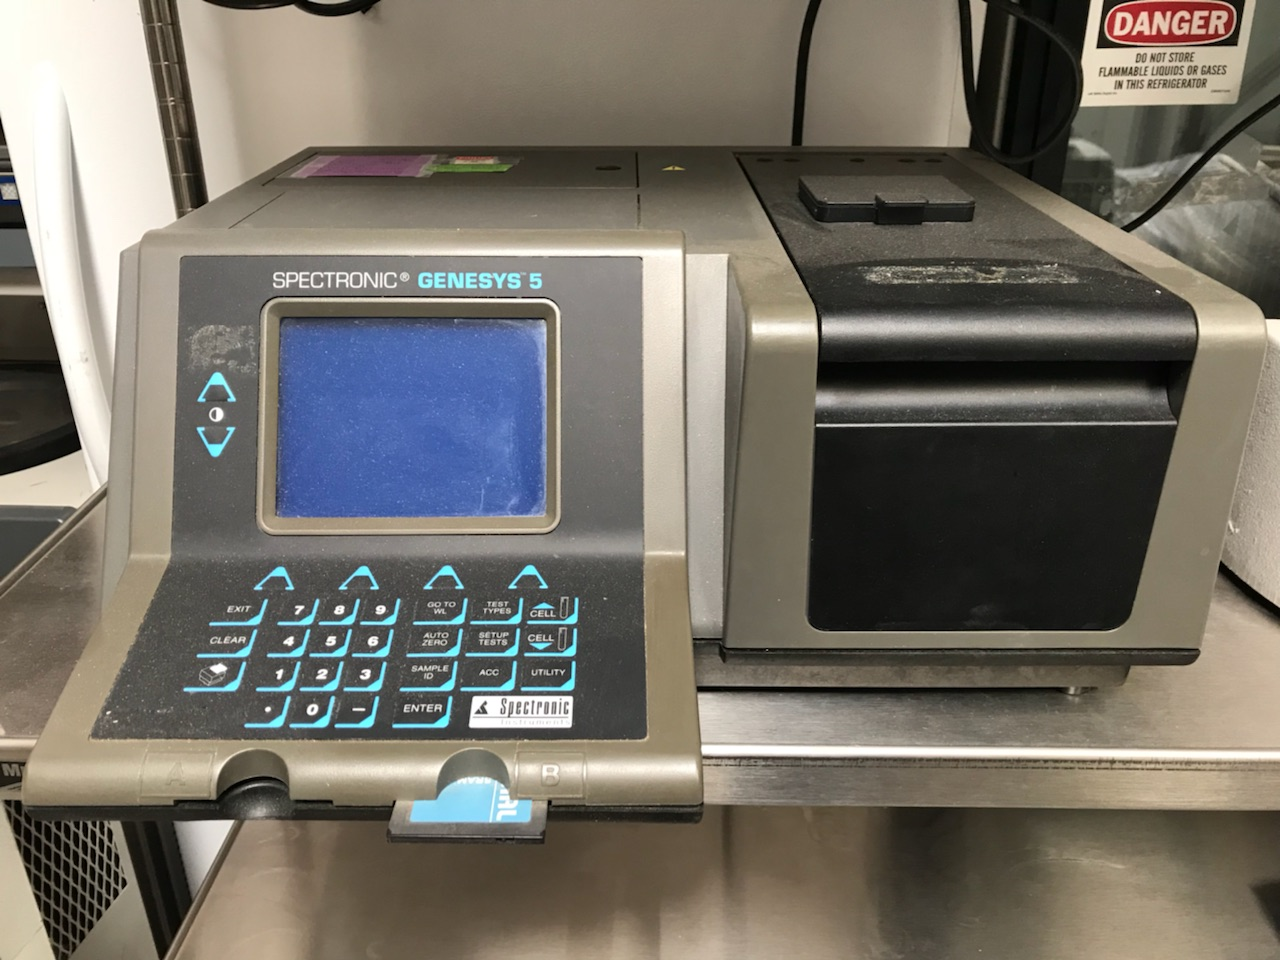 Spectronic Genesys 5 Spectrophotometer Visible/Absorbance Reader